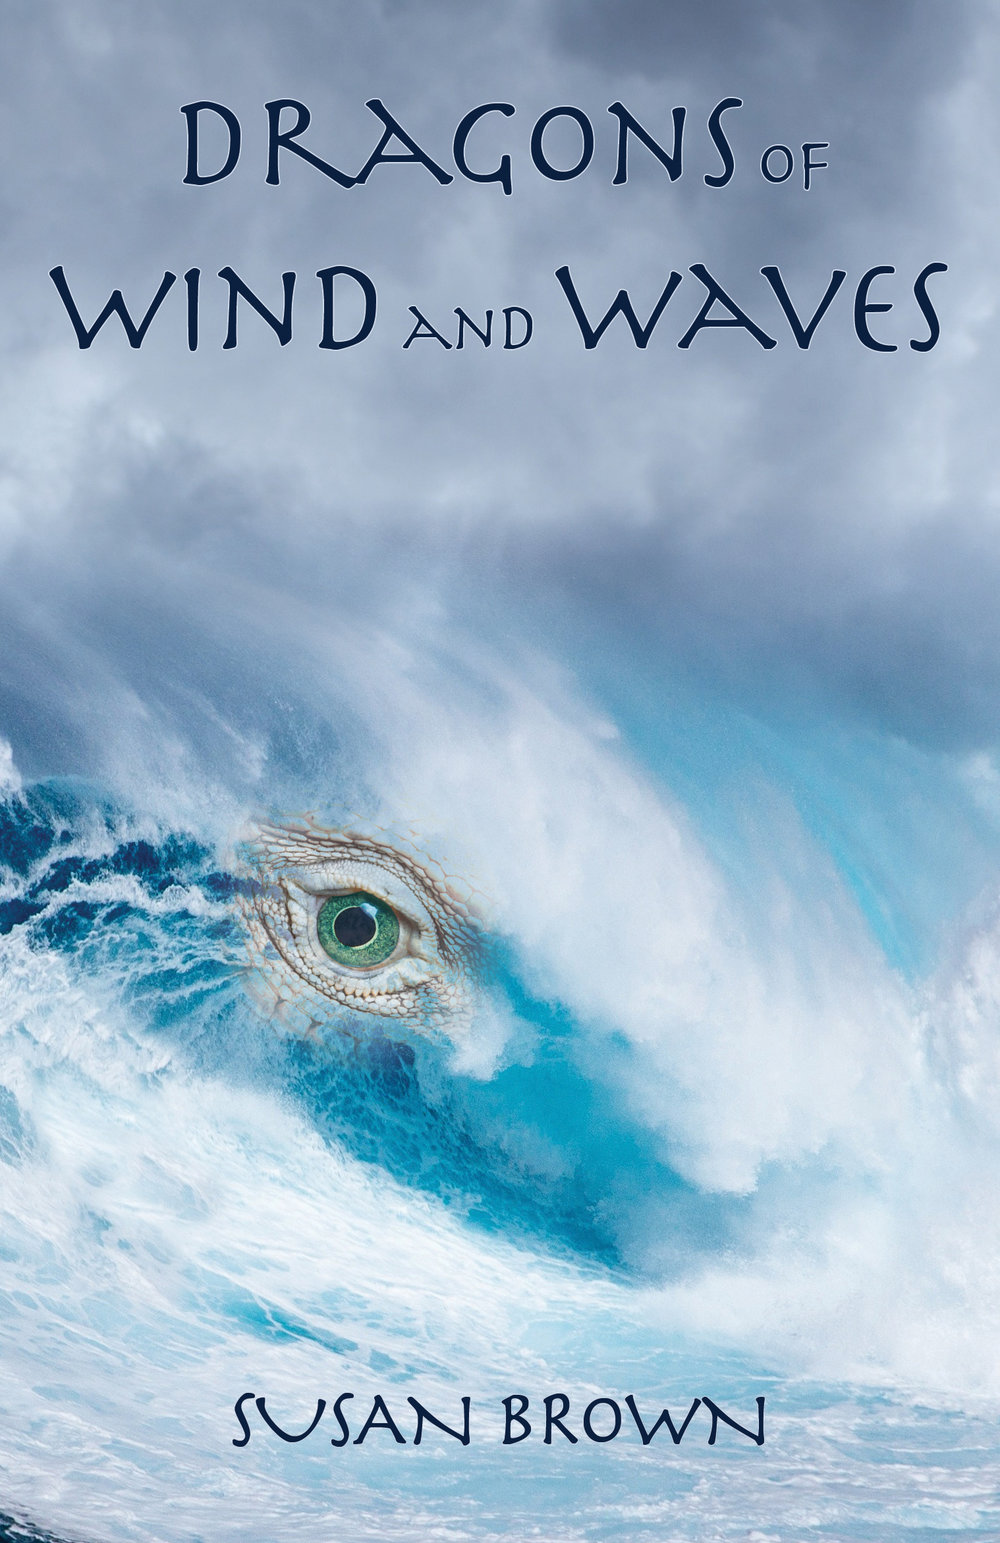 Dragons of Wind and Waves by Susan Brown